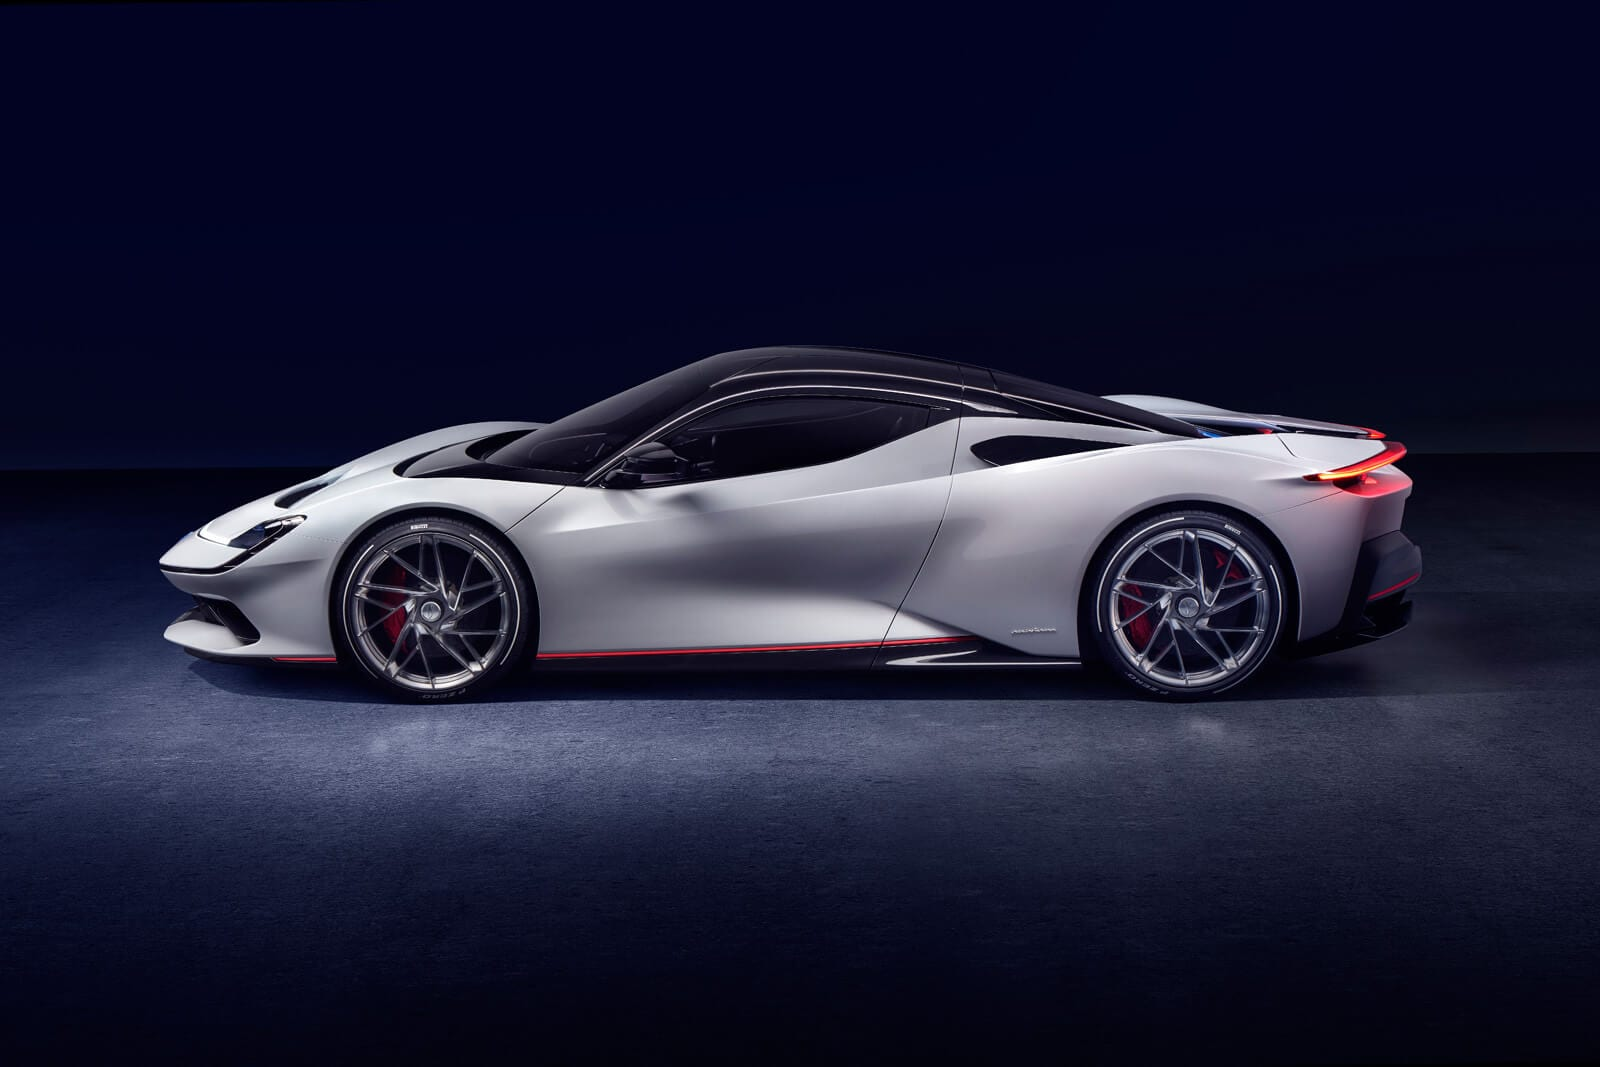 1,900 hp/ 2,300 Nm torque with zero emissions thrusts Battista to 100 km/h in less than two seconds yet is capable of 450 kms on one charge with a 120 kWh Li-ion battery pack.